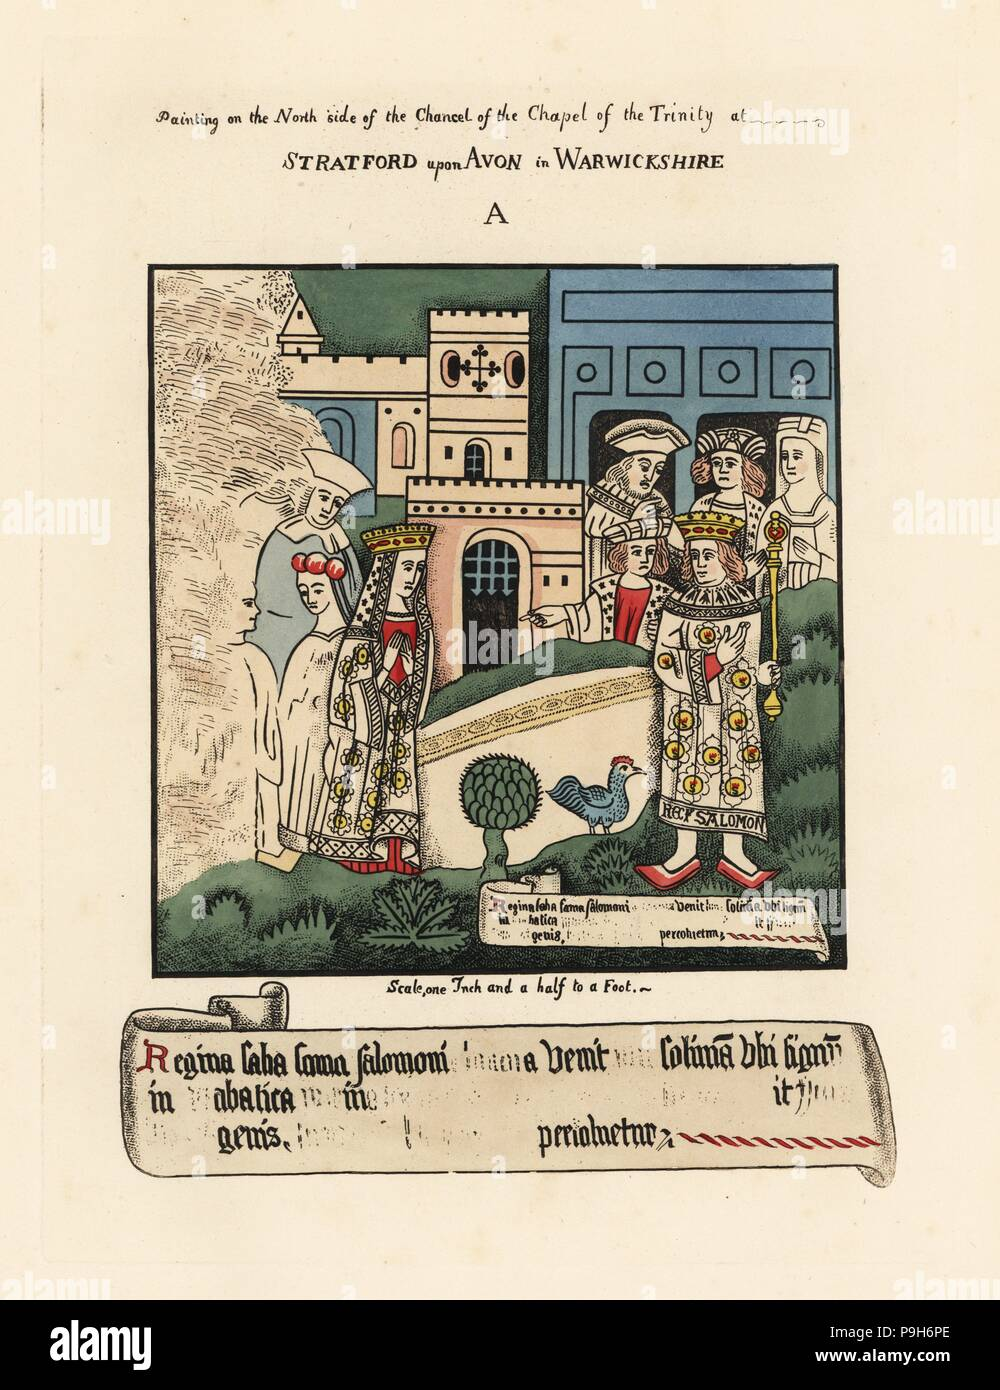 The Queen of Sheba visiting the court of King Solomon of Israel. Painting on the north side of the Chancel. Handcoloured etching drawn and etched by Thomas Fisher from his Paintings on the Walls of the Chapel of the Trinity, Stratford upon Avon, 1808. - Stock Image